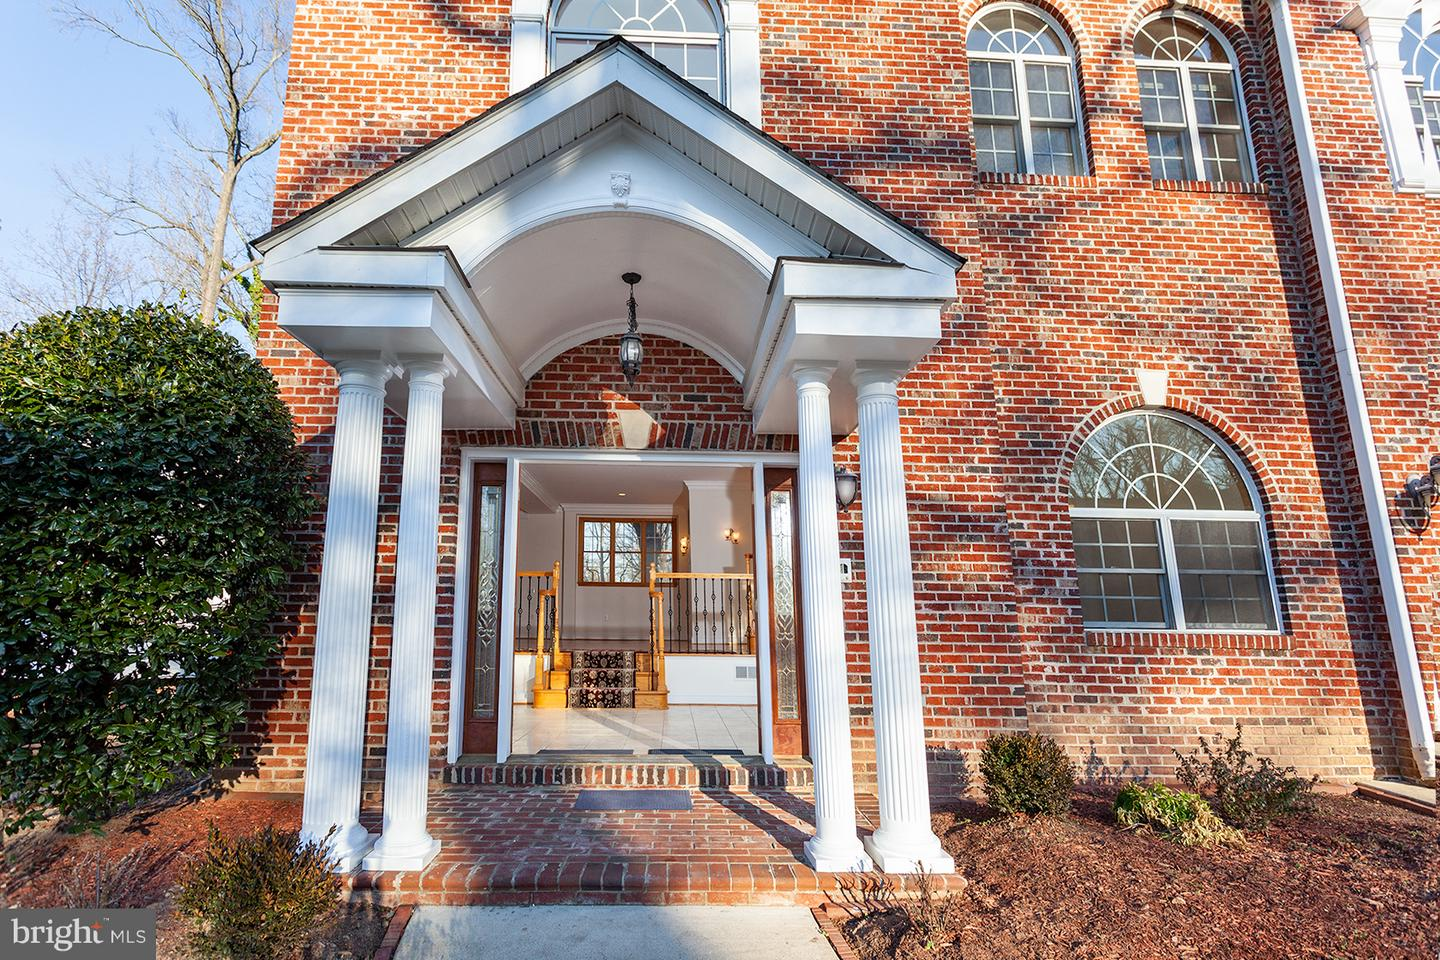 Additional photo for property listing at 5500 Brookland Rd 5500 Brookland Rd Alexandria, Virginia 22310 United States